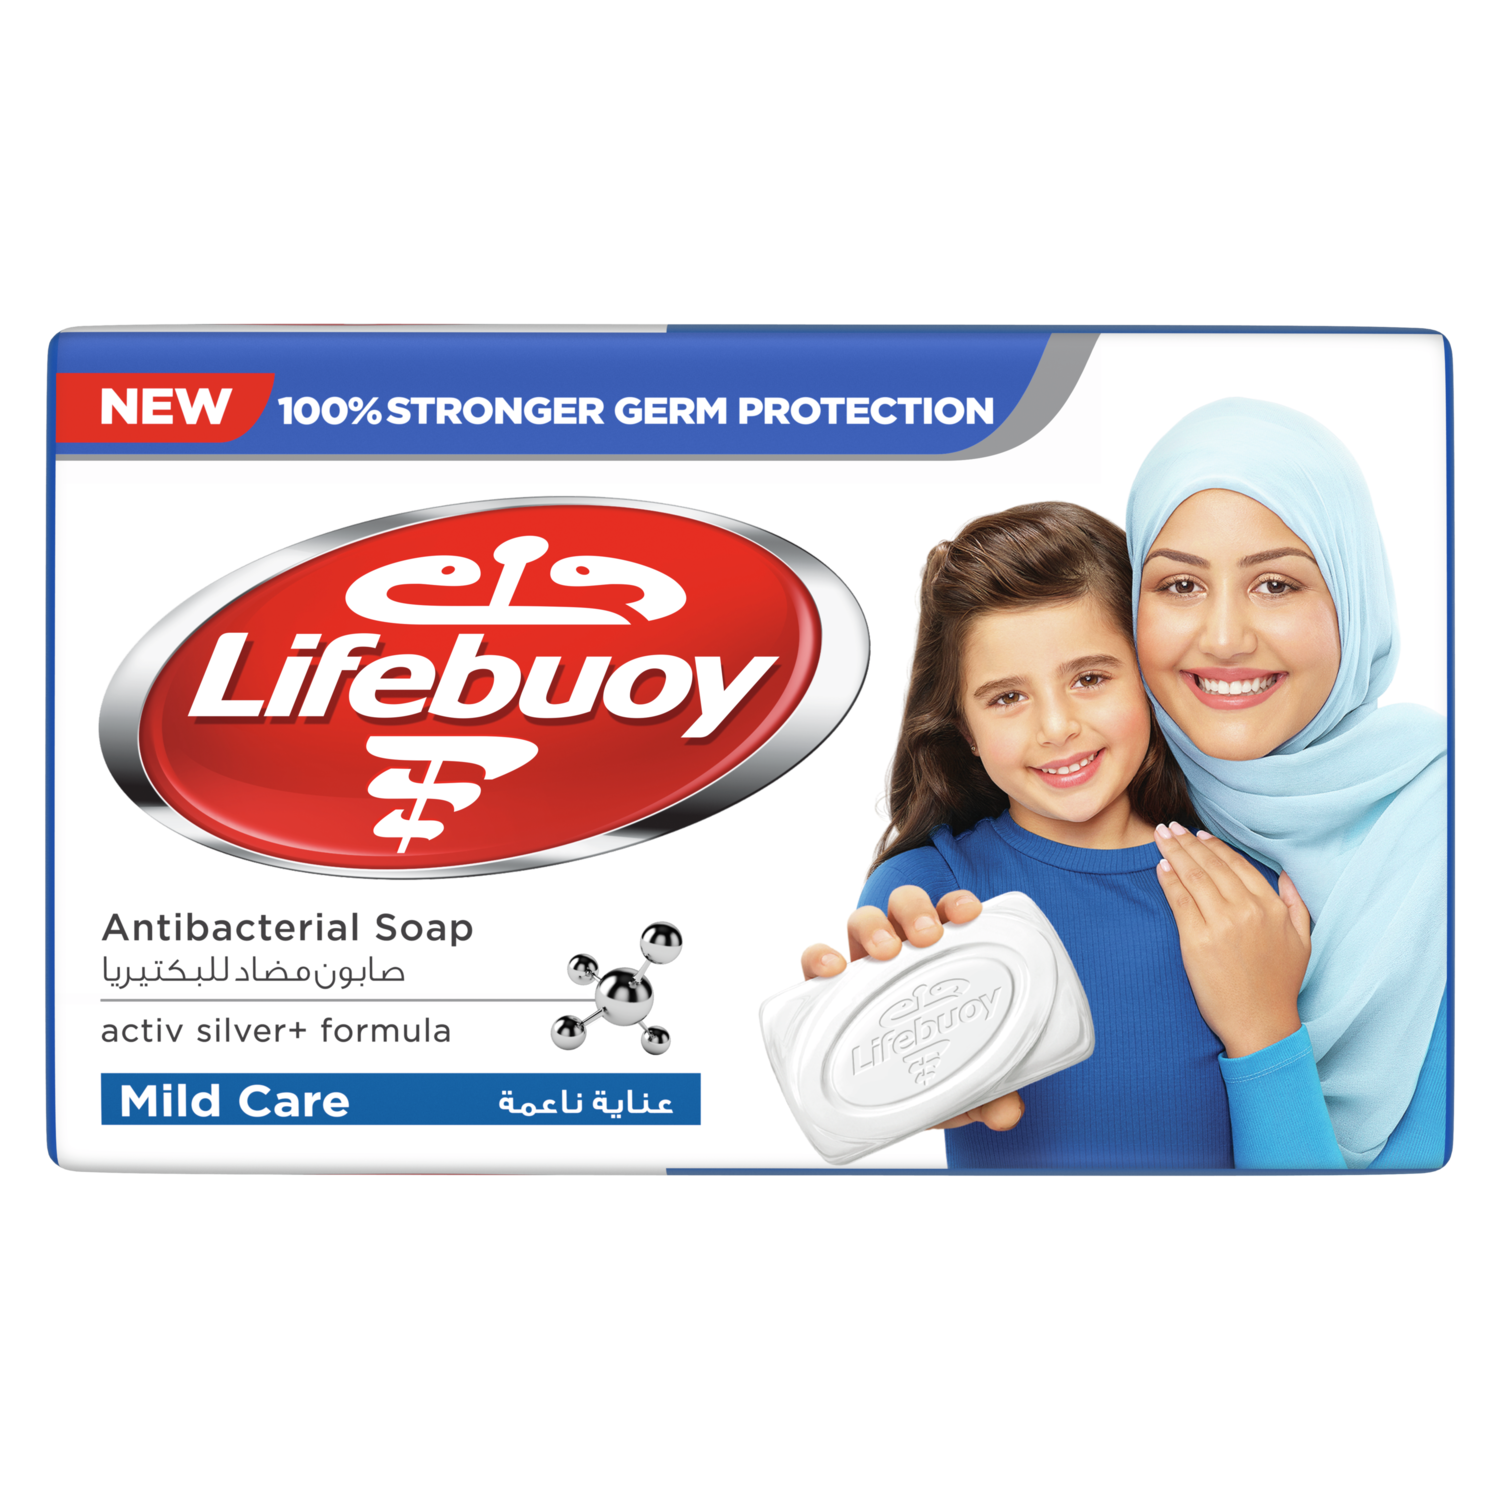 LIFEBUOY BAR MILD CARE(STARK) 72X125G